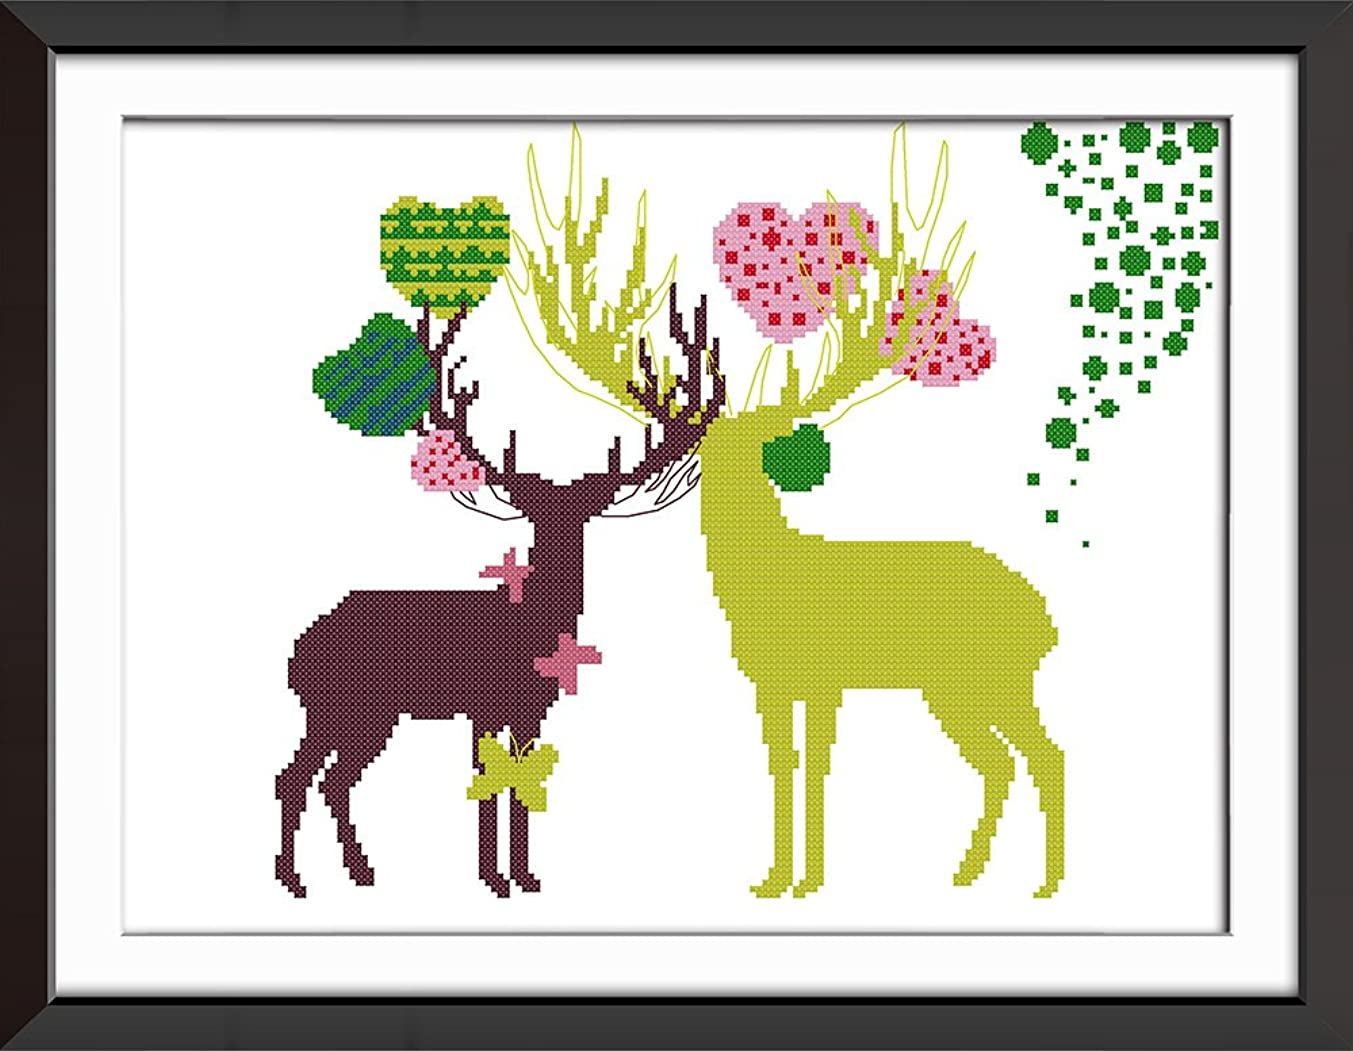 "Stamped Cross Stitch Starter Kits Printed Pattern - Abstract Painting Deer 20.5"" x 15.7"", Embroidery Art Cross-Stitching Christmas Gift, Without Frame"